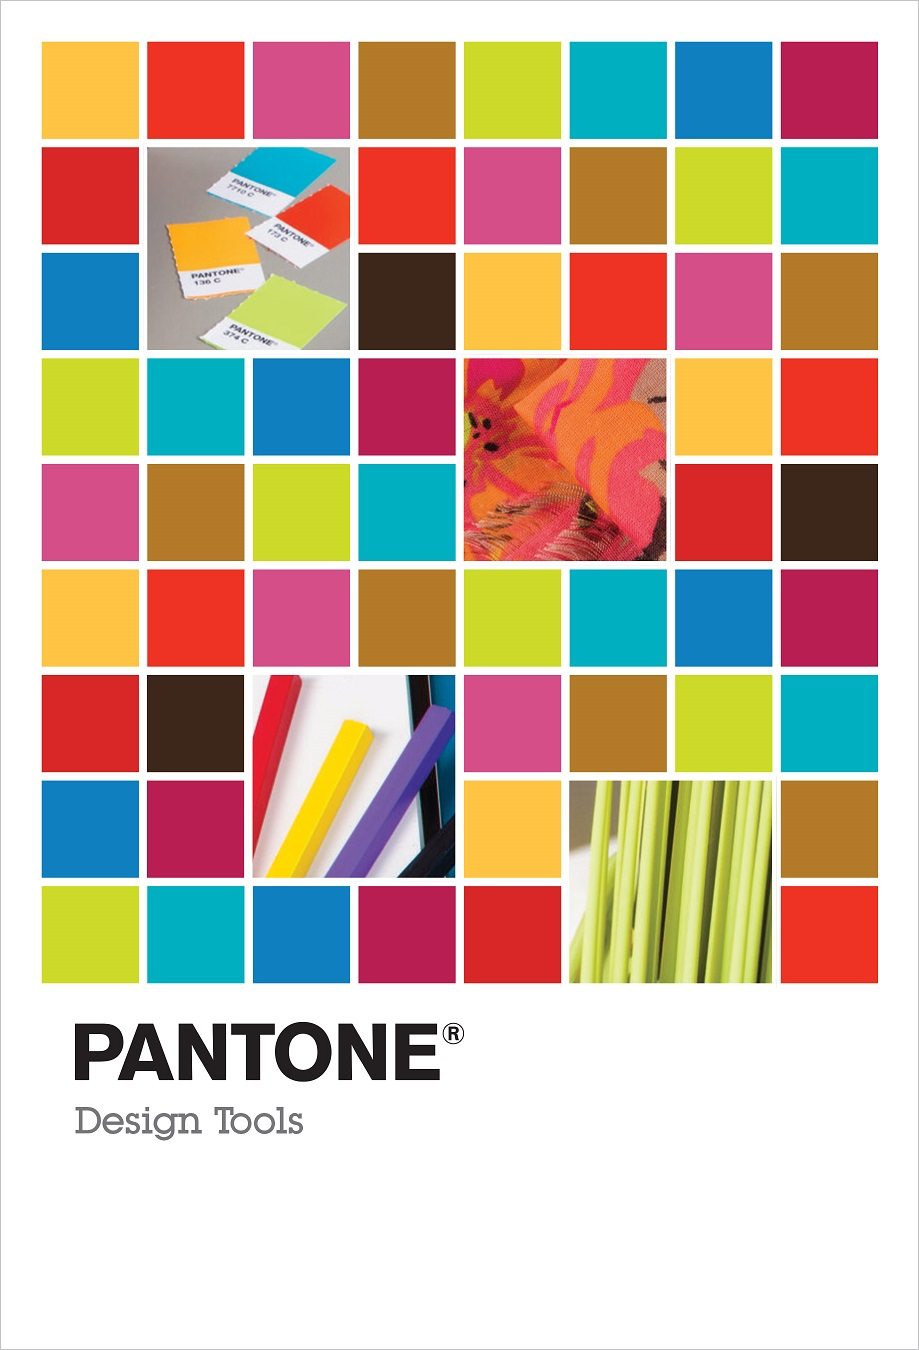 Pantone The color of ideas